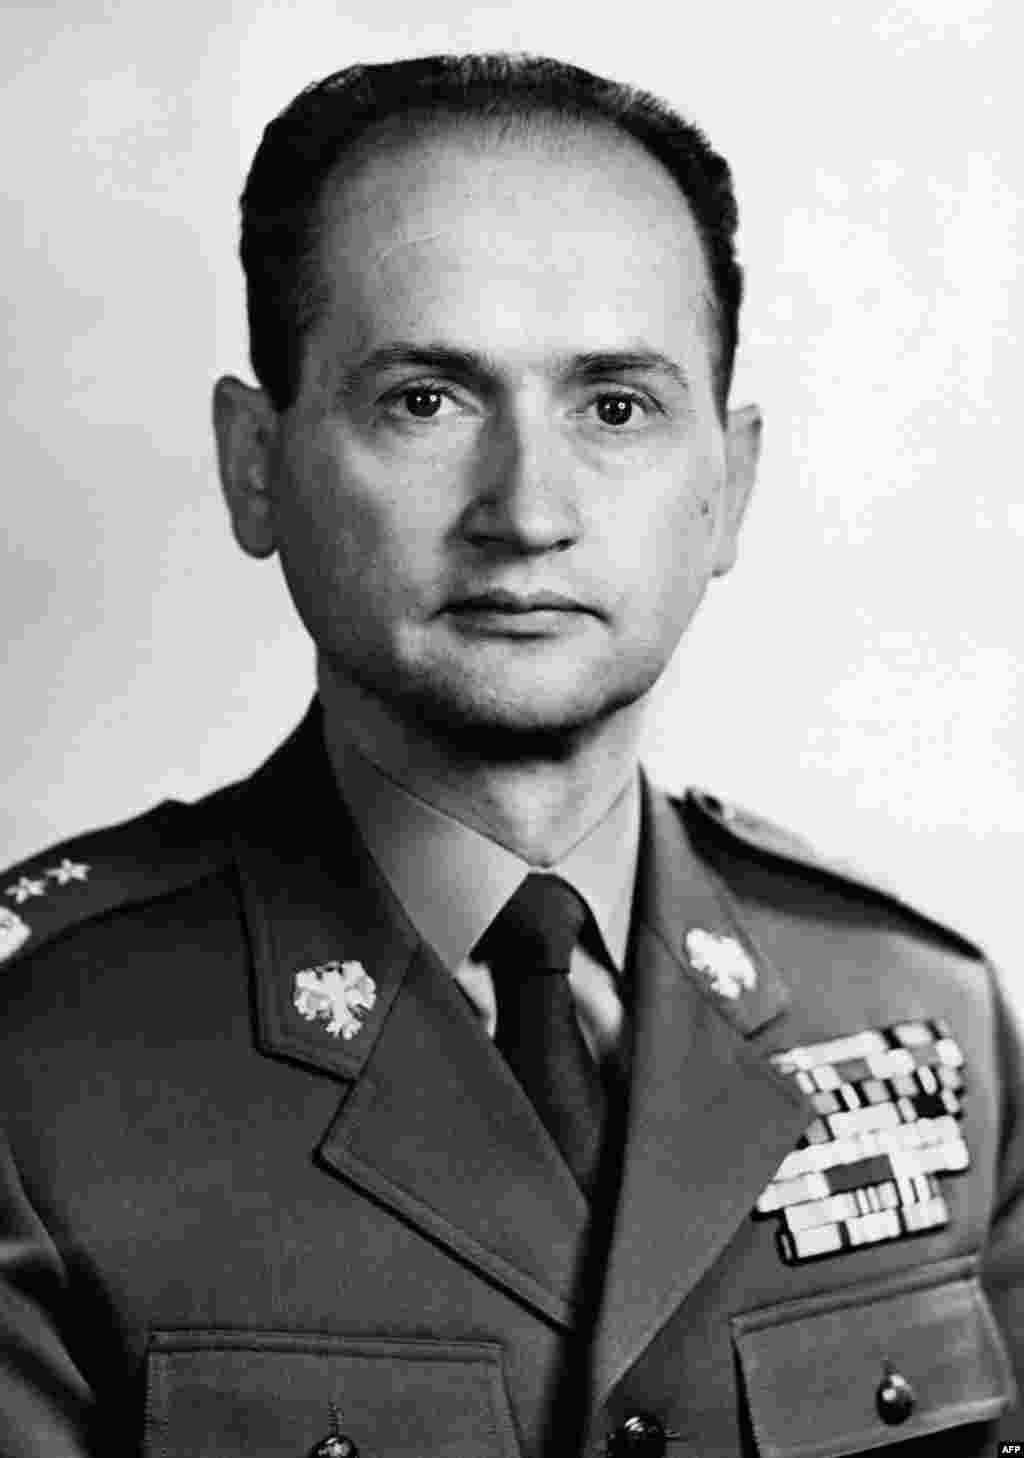 A portrait of military man Jaruzelski from 1968, the year that liberalizations in neighboring Czechoslovakia known as Prague Spring were crushed by a Warsaw Pact invasion.